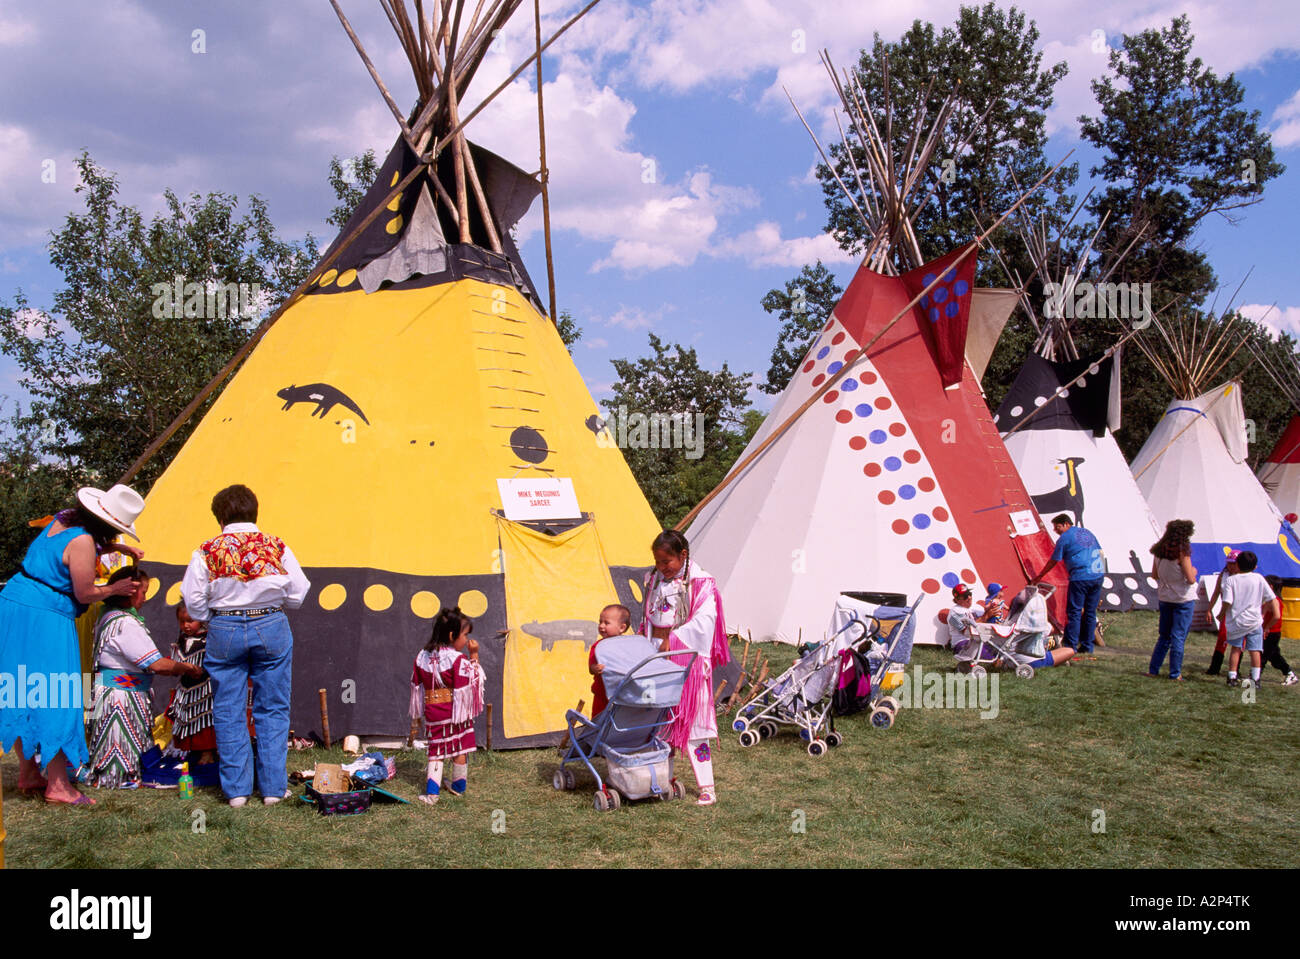 Teepees of the Plains Indians at the Calgary St&ede Indian Village in Calgary Alberta Canada & Teepees of the Plains Indians at the Calgary Stampede Indian ...